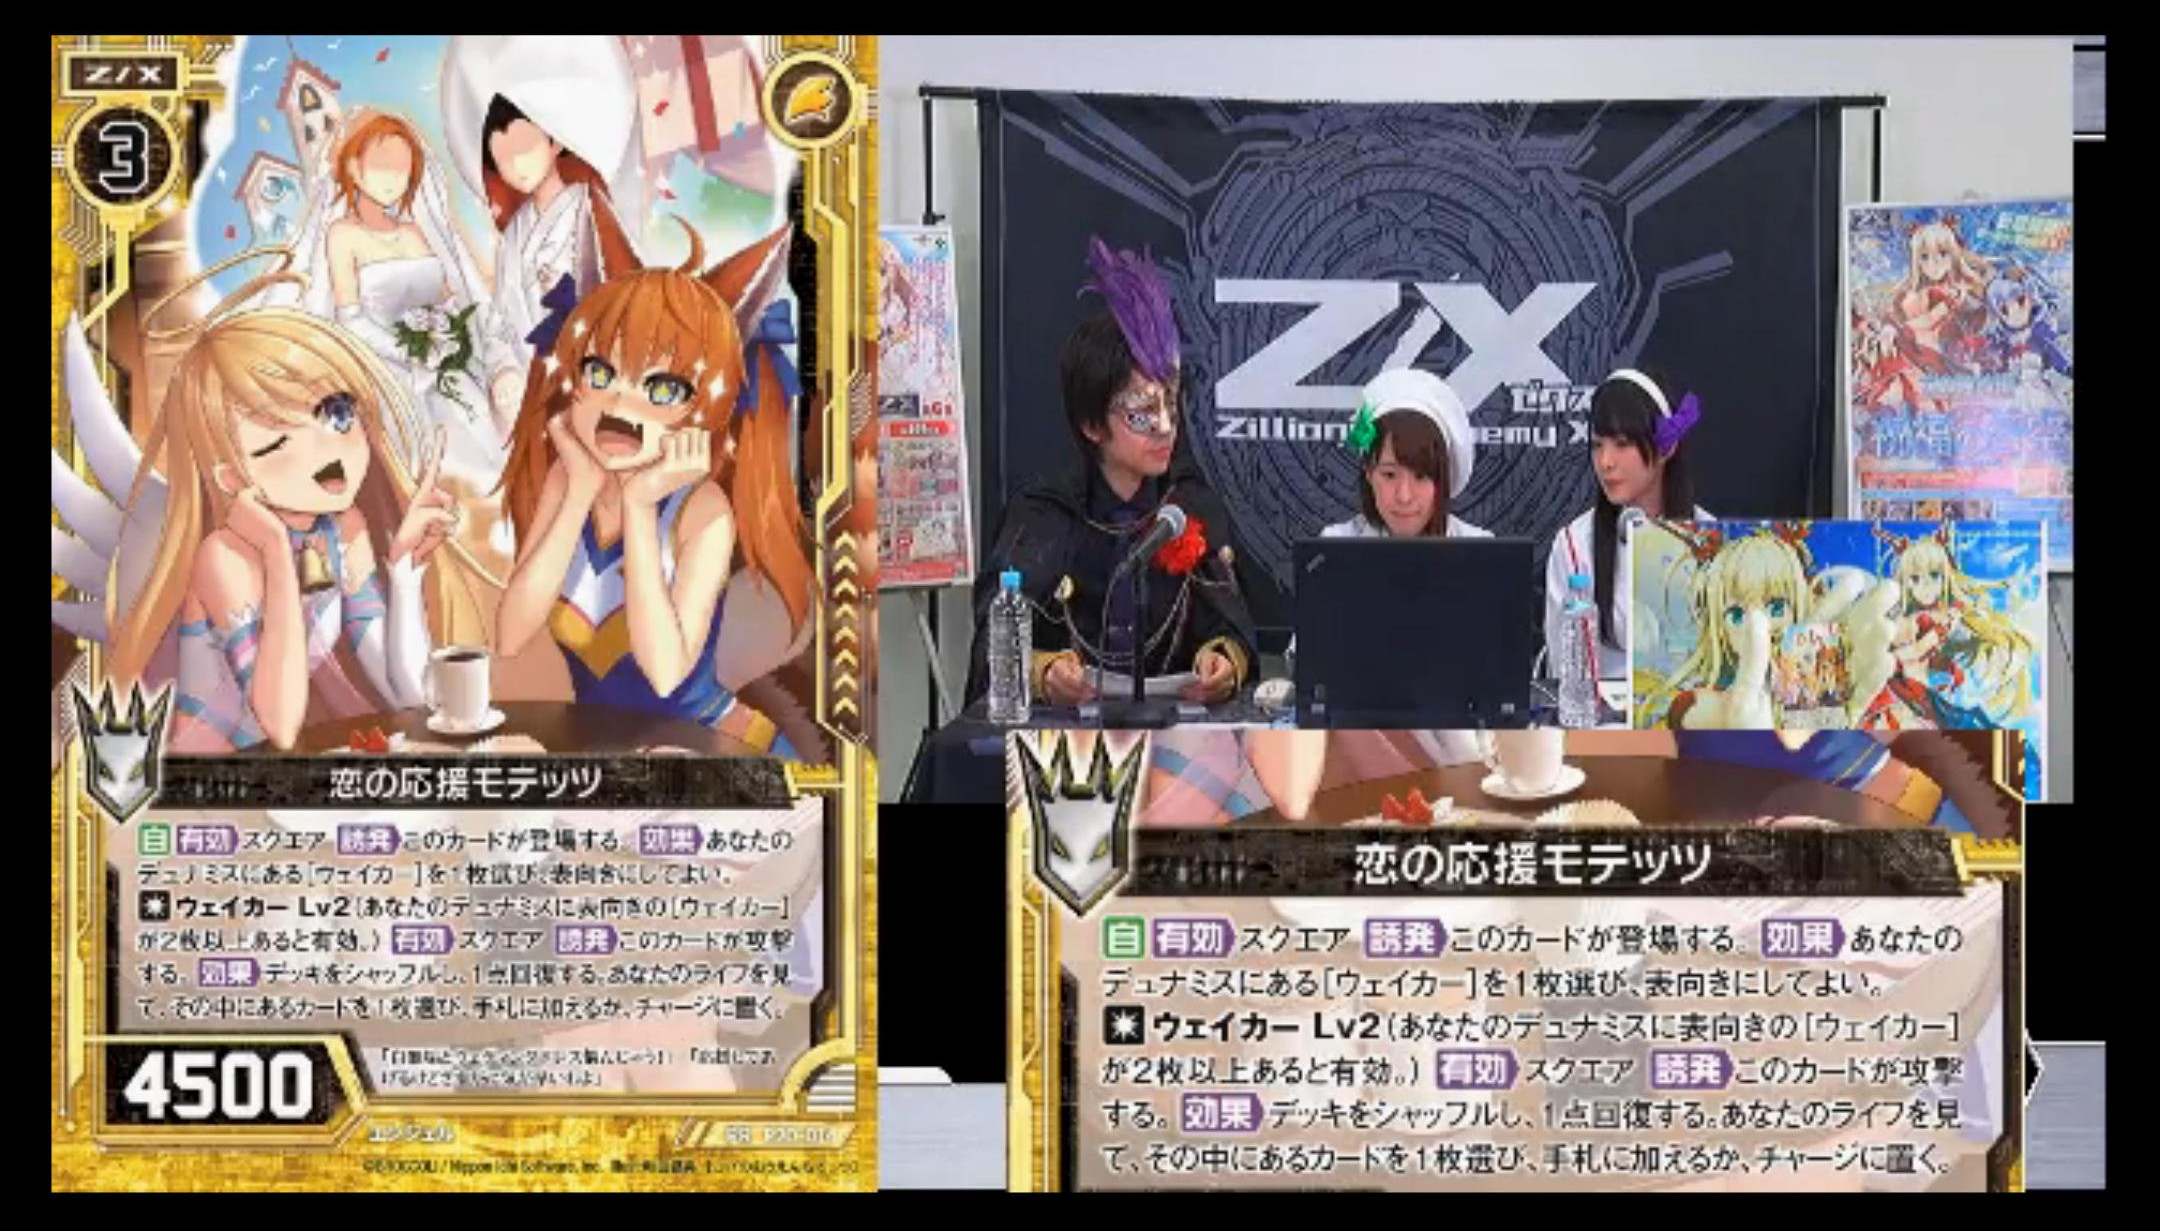 zx-ignition-broadcast-170419-051.jpg